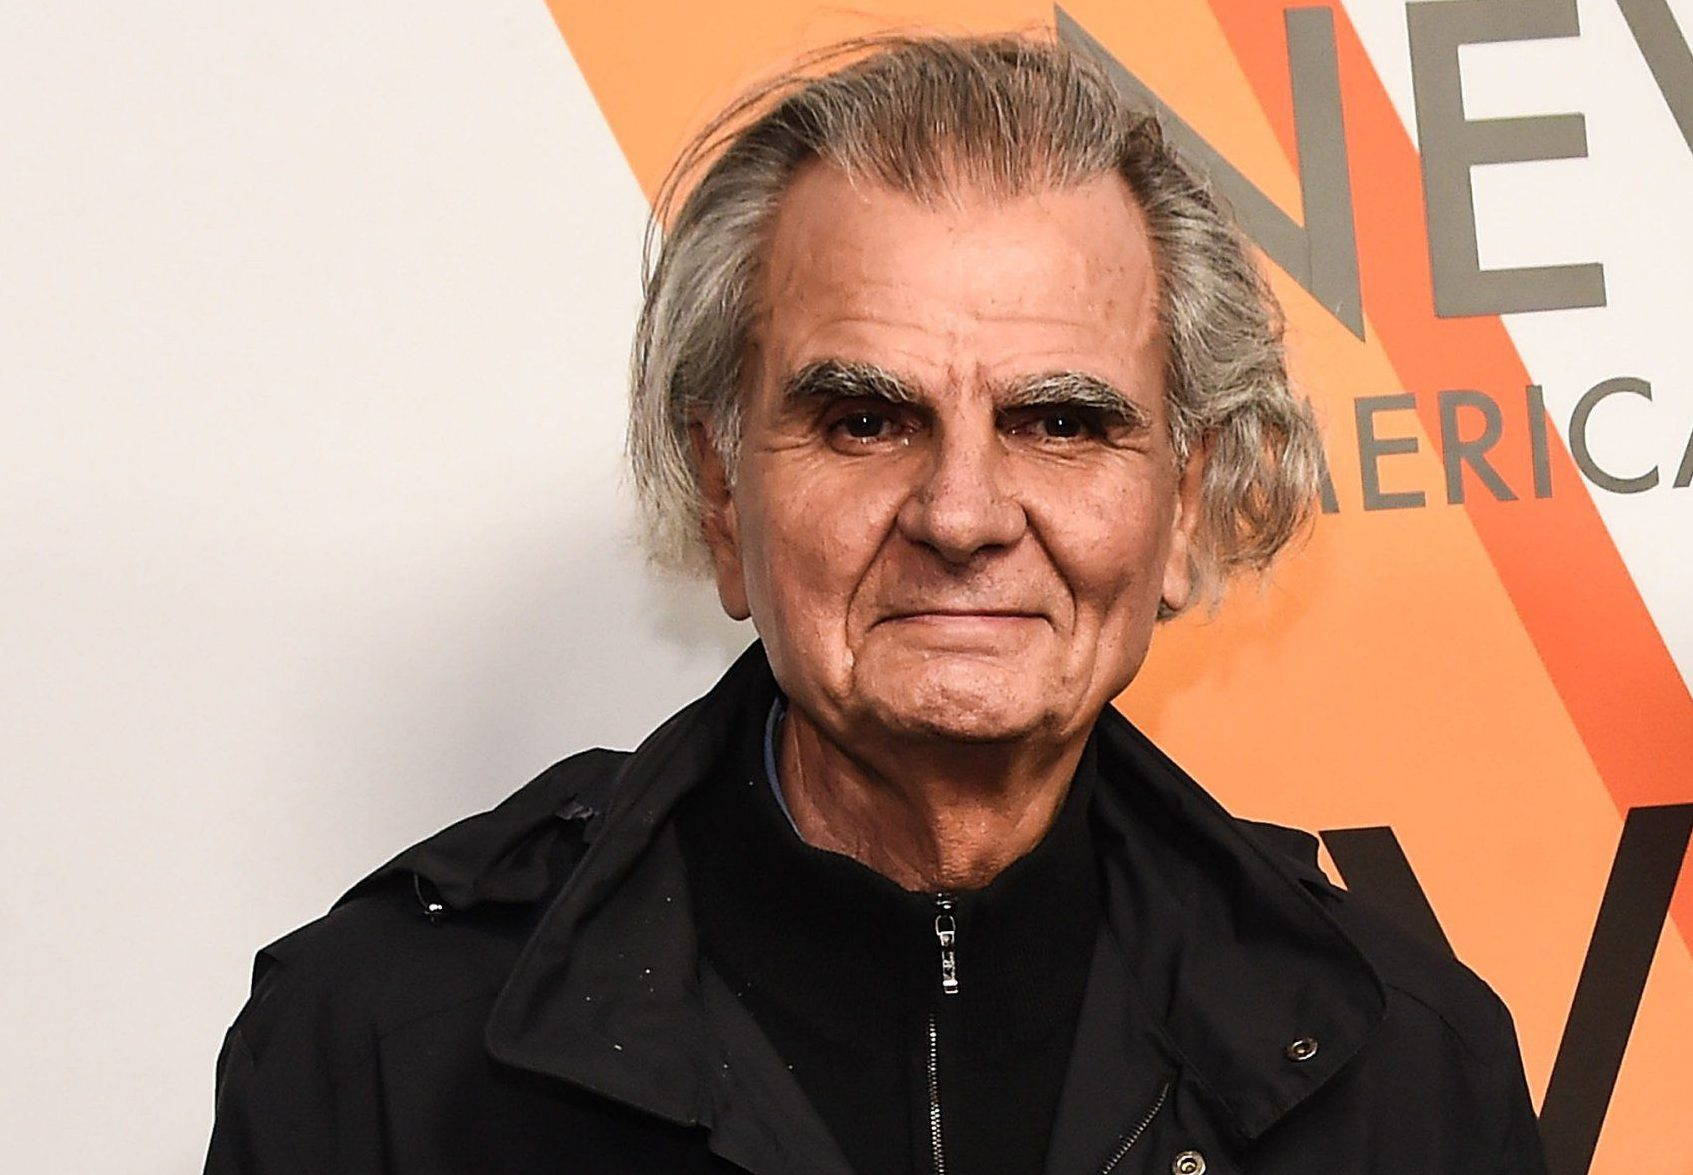 Fashion photographer Patrick Demarchelier accused of sexual assault by six women